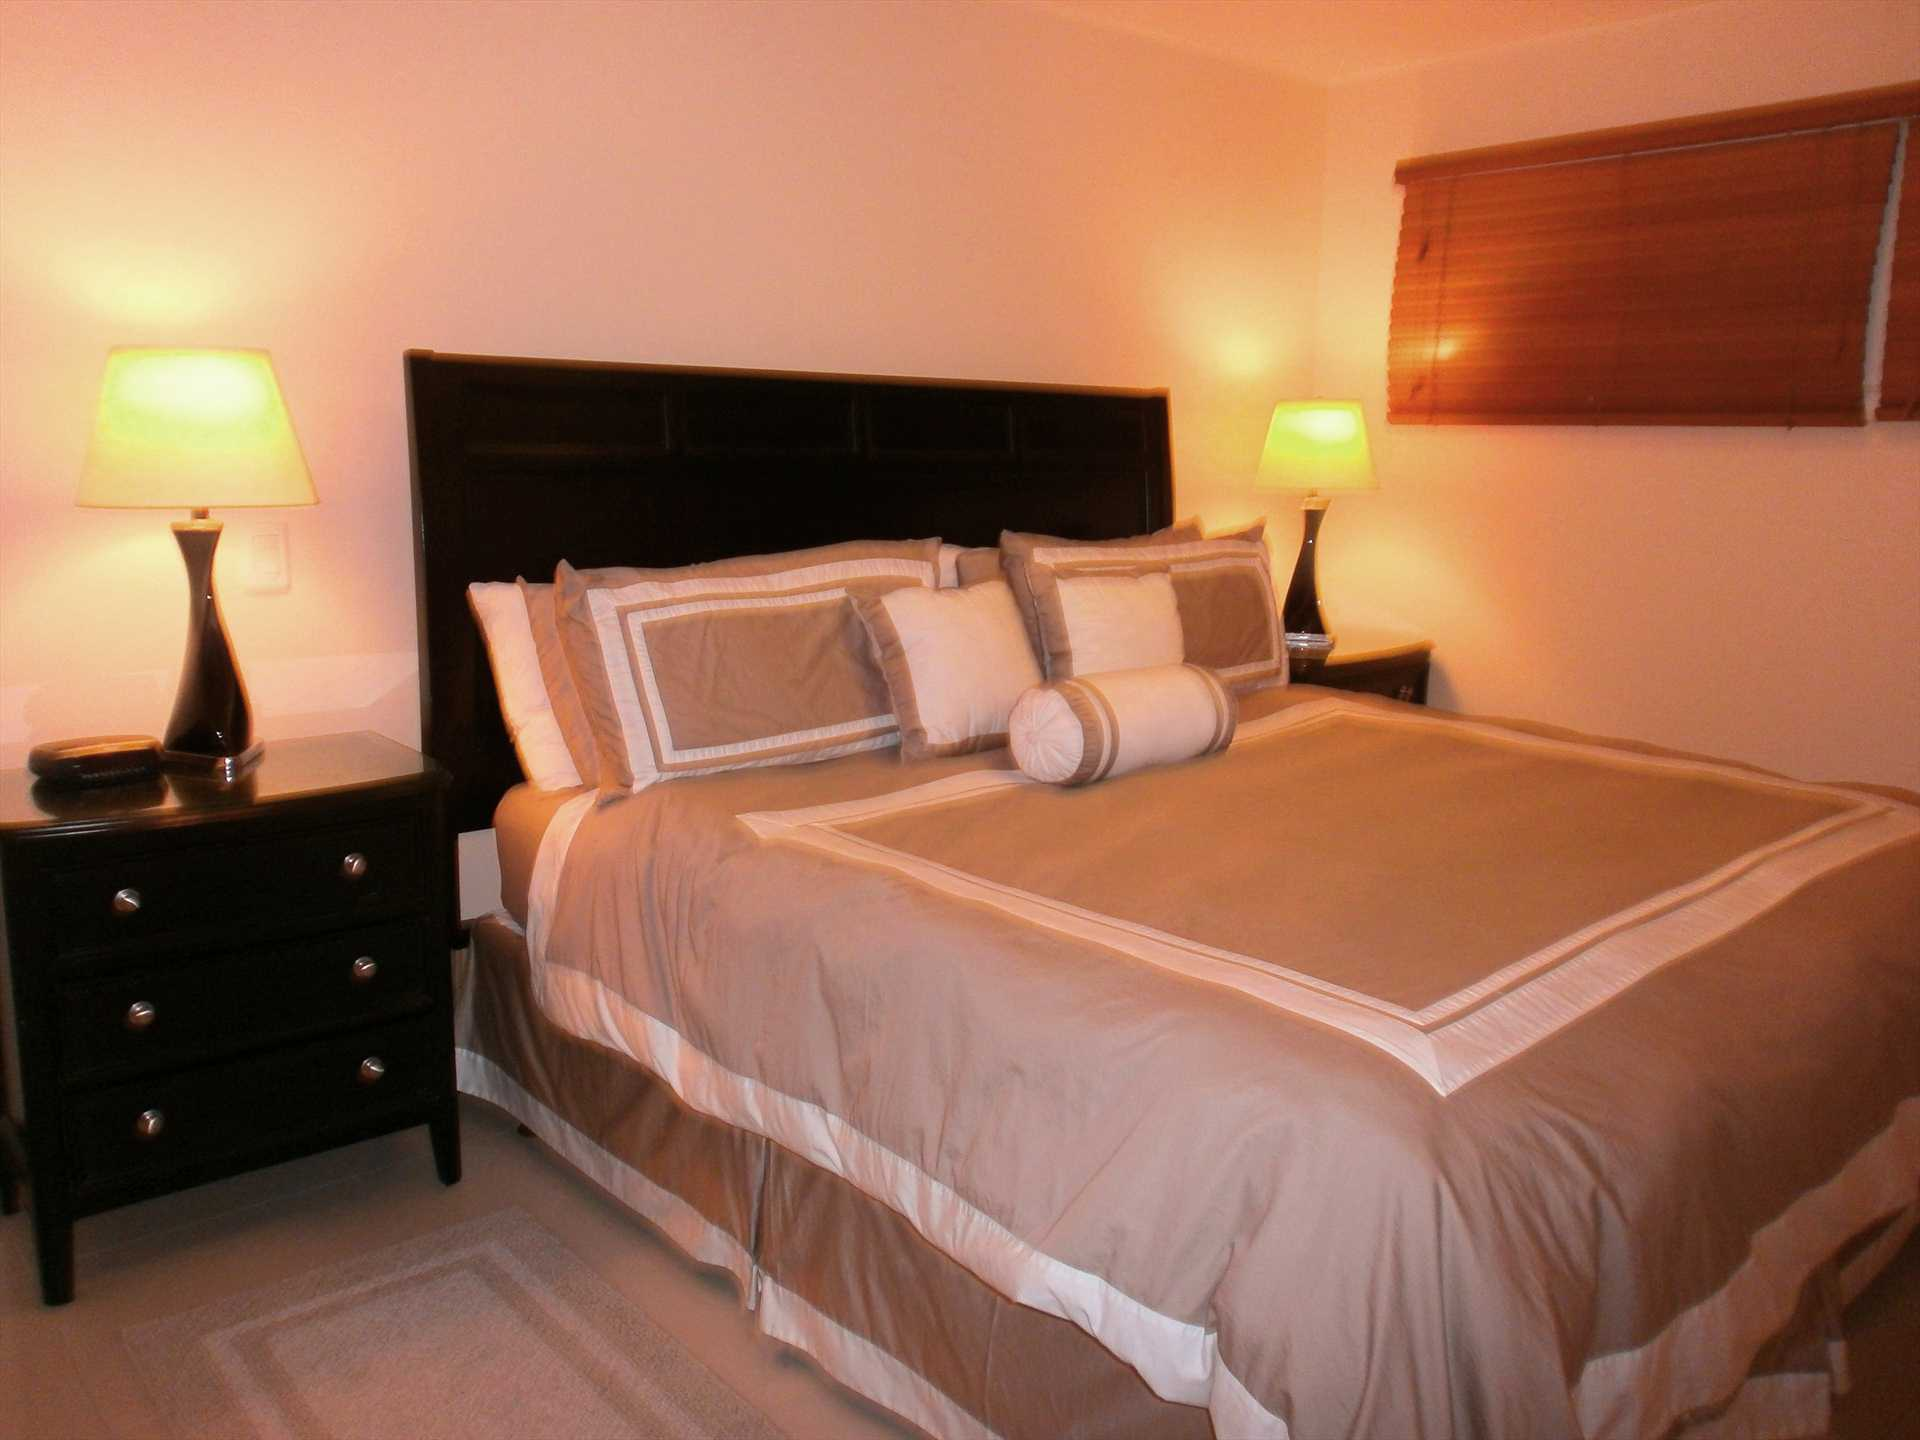 King-size bed in master bedroom